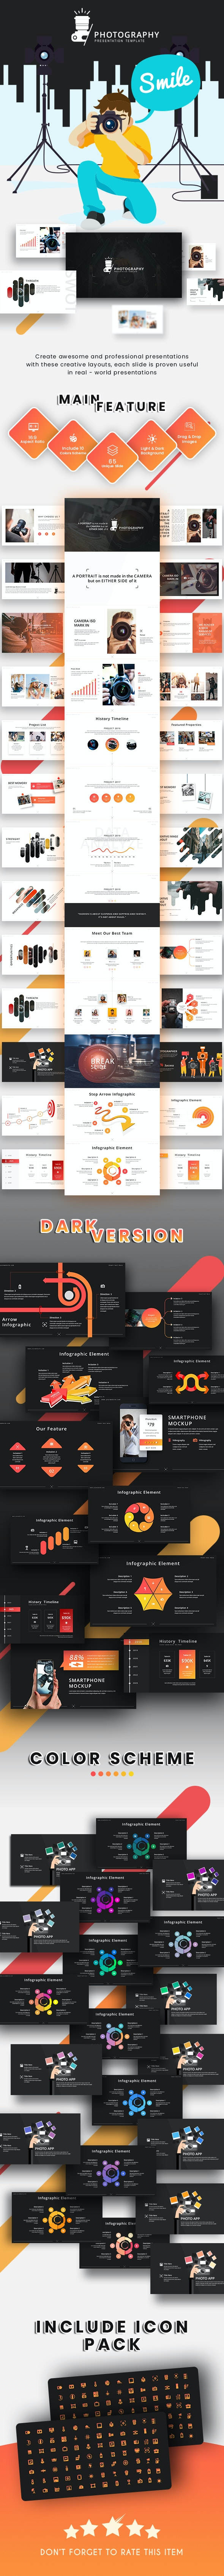 Photography Presentation Template - PowerPoint Templates Presentation Templates